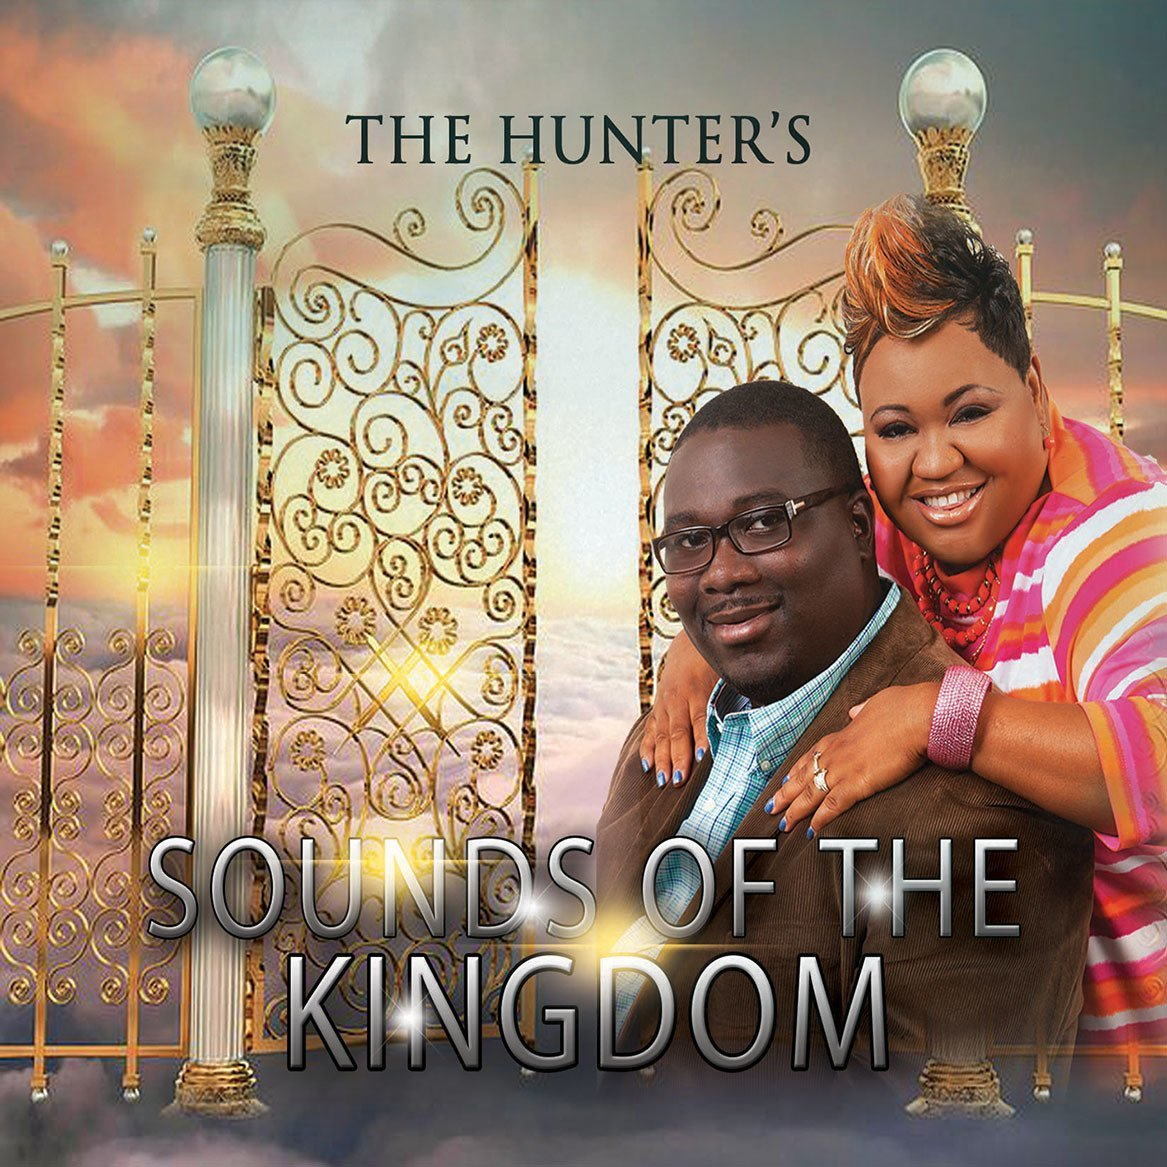 Sounds of the Kingdom